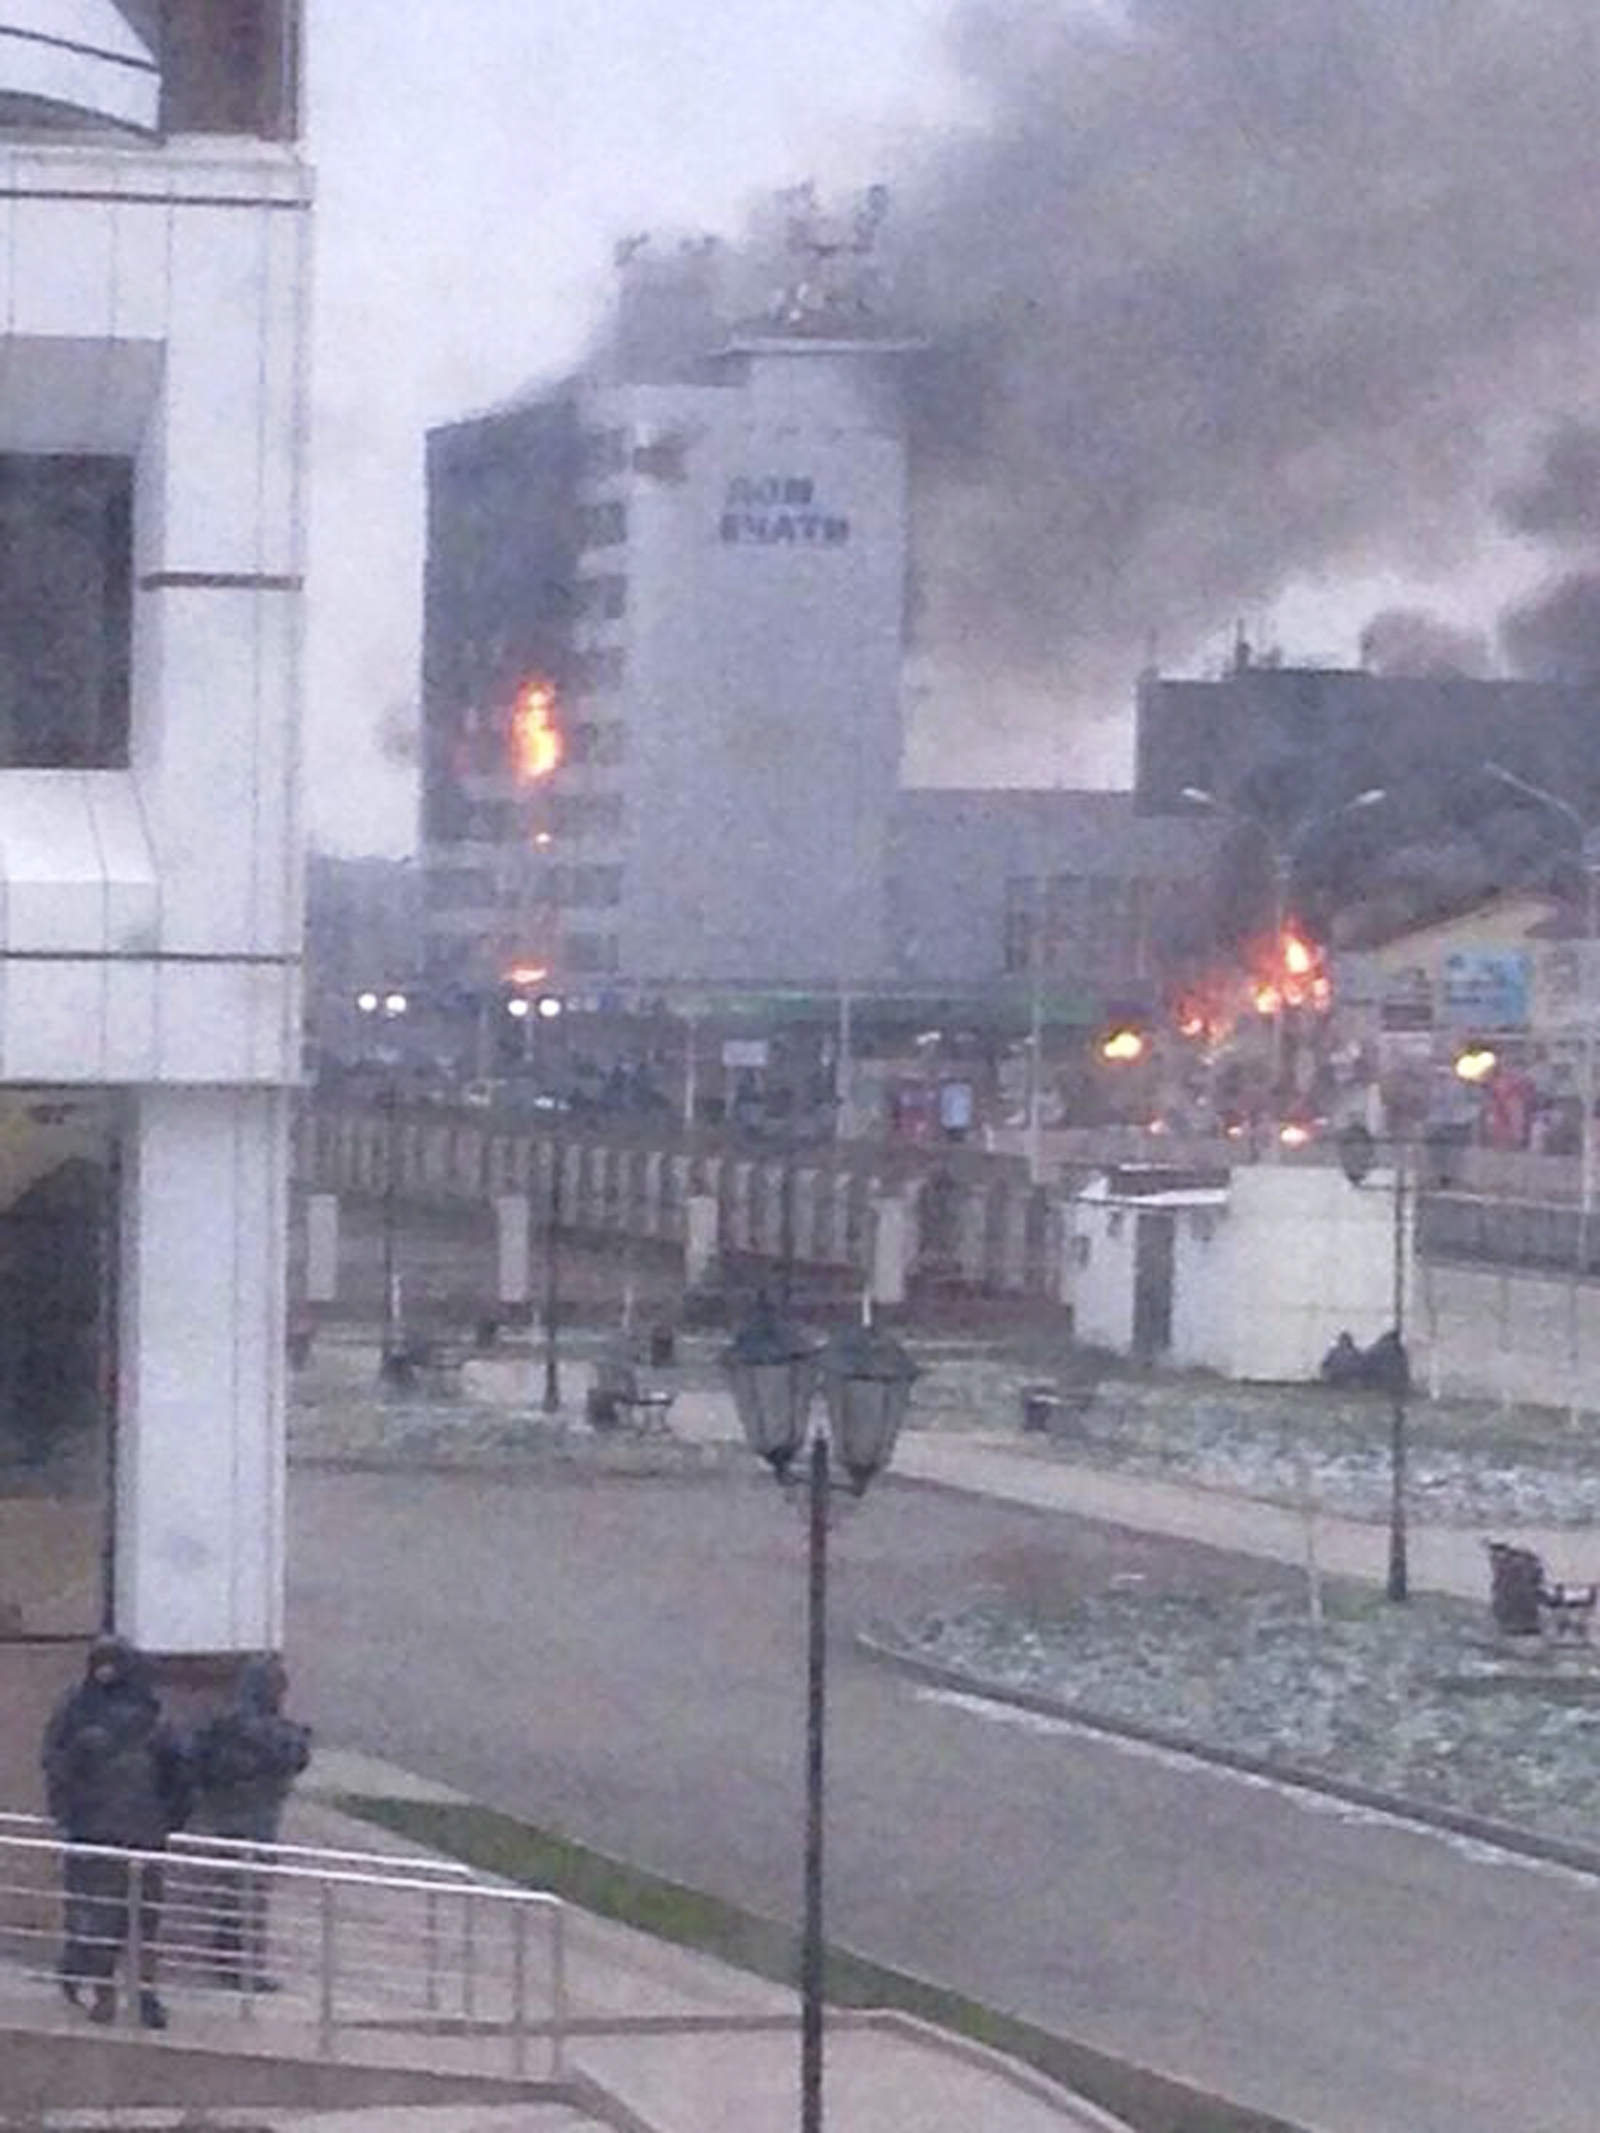 A local media building known as the Press House burns as militants attack in the Chechen capital Grozny, December 4, 2014.